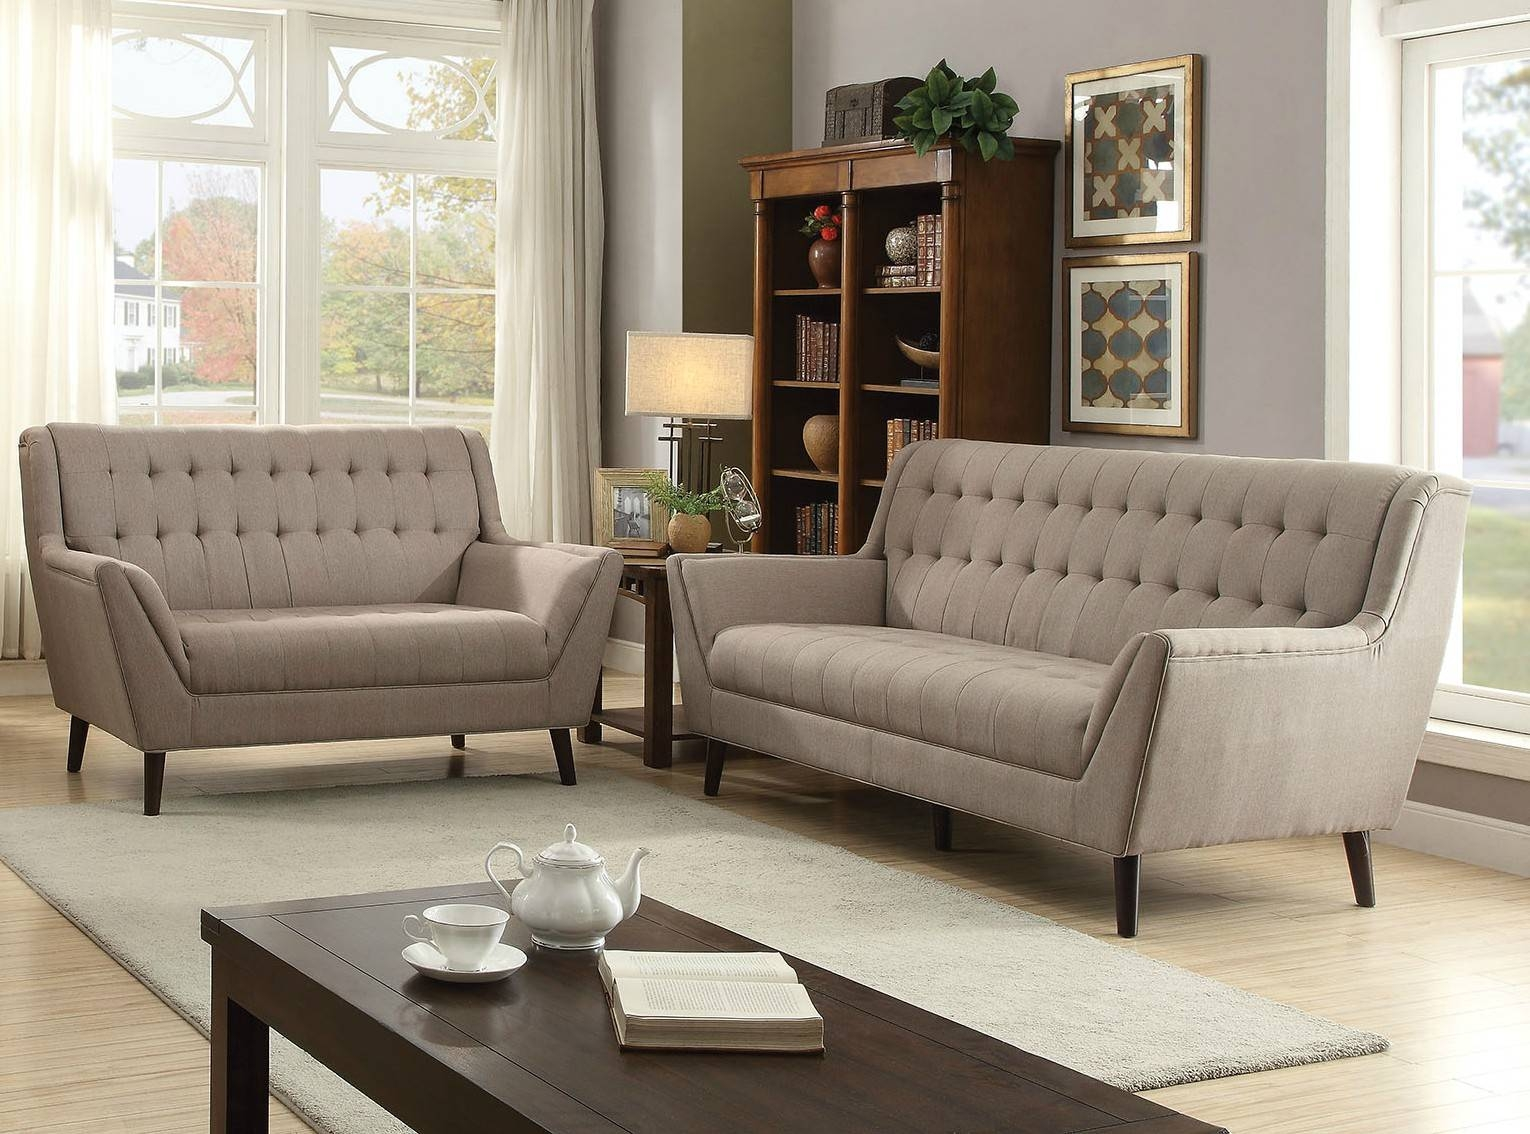 Watonga Contemporary Light Brown Linen Fabric 2Pc Buttonless regarding Tufted Linen Sofas (Image 30 of 30)